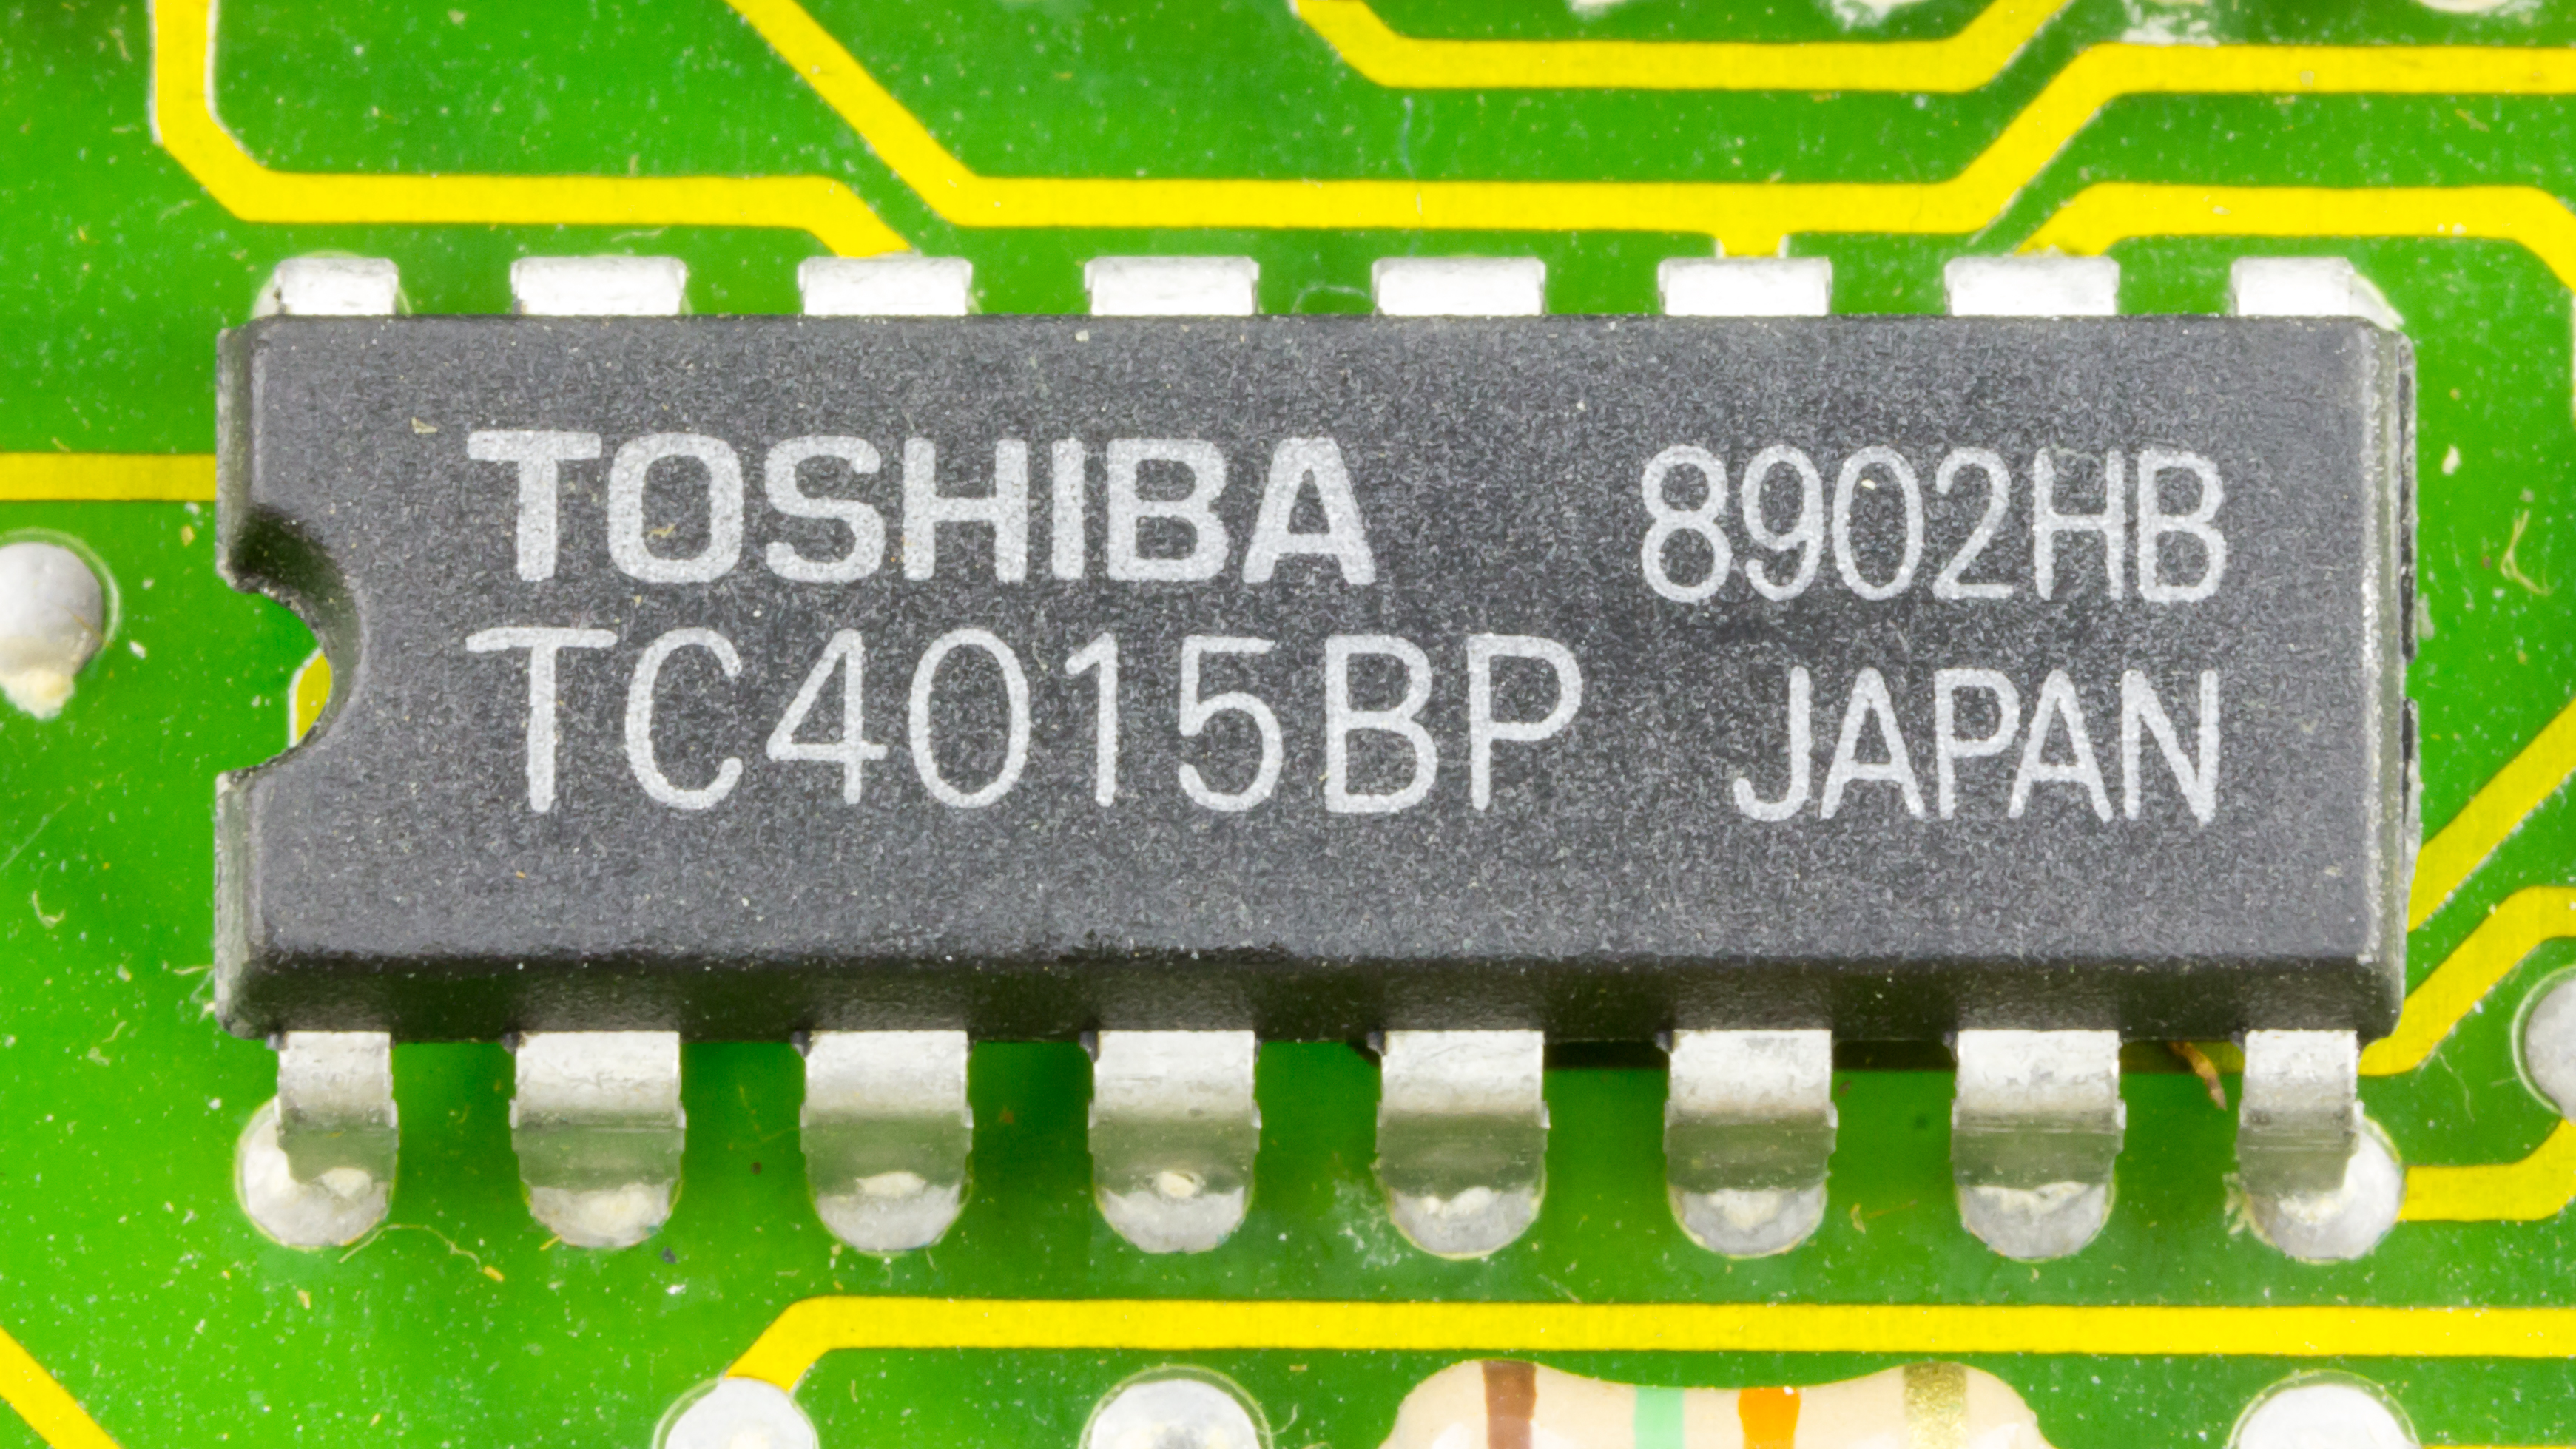 Shift Register Wikipedia Binary Code On Circuit Board Toshiba Tc4015bp Dual 4 Stage Static With Serial Input Parallel Output